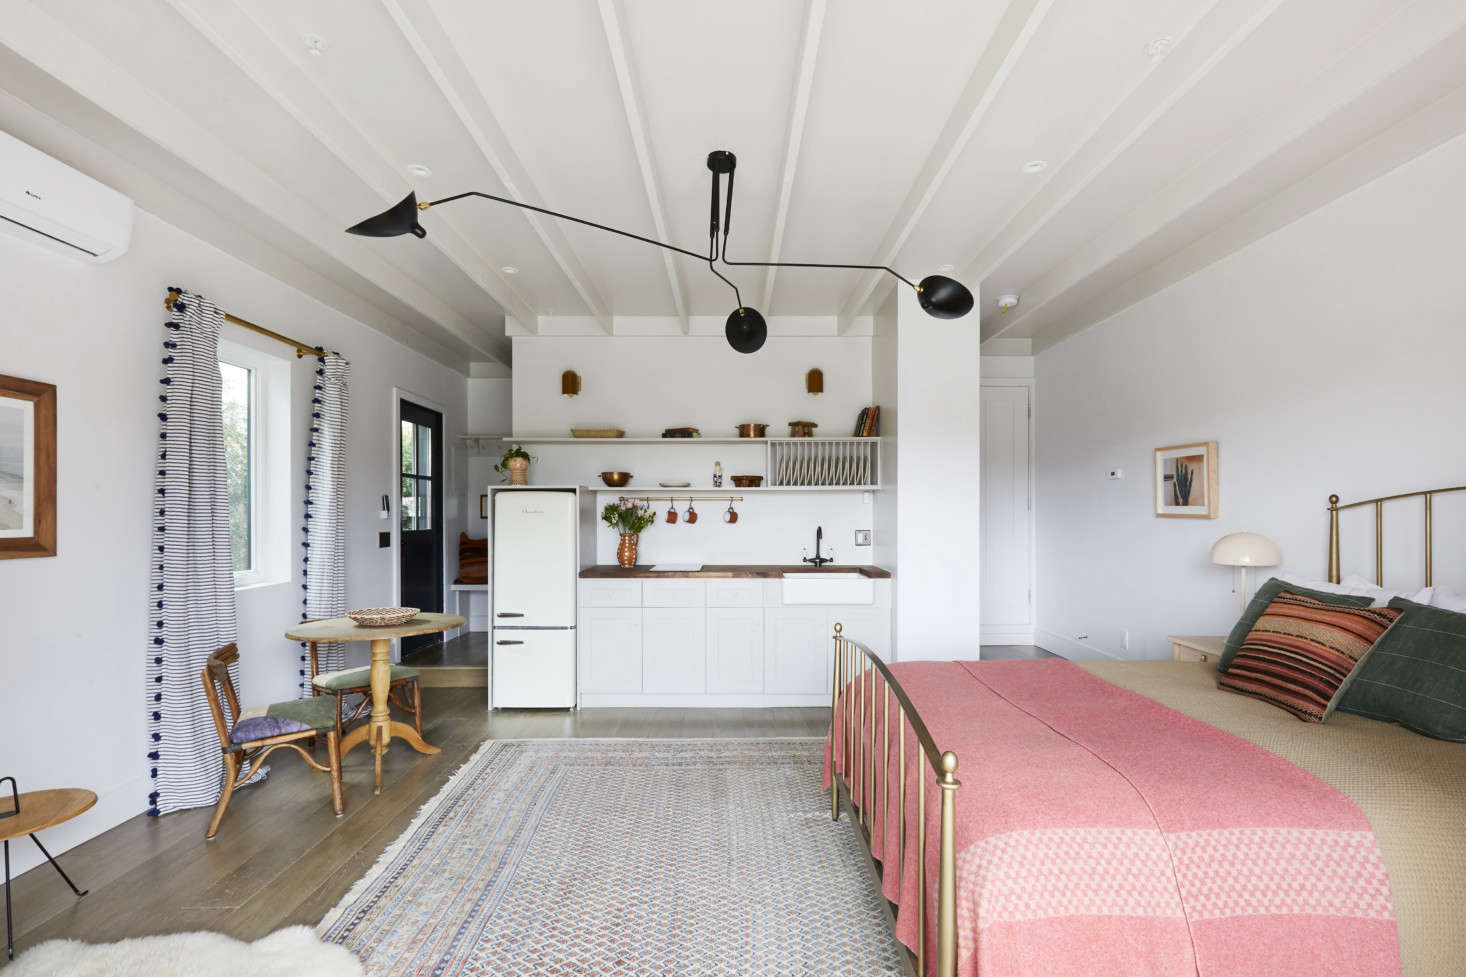 In place of two cars, the approximately 400 square foot garage now has a kitchen, eating area, and bed. See more of this inspired conversion in Found Space: A Garage-Turned-Cottage in LA. Photograph by Jessica Alexander, courtesy of Allprace Properties.